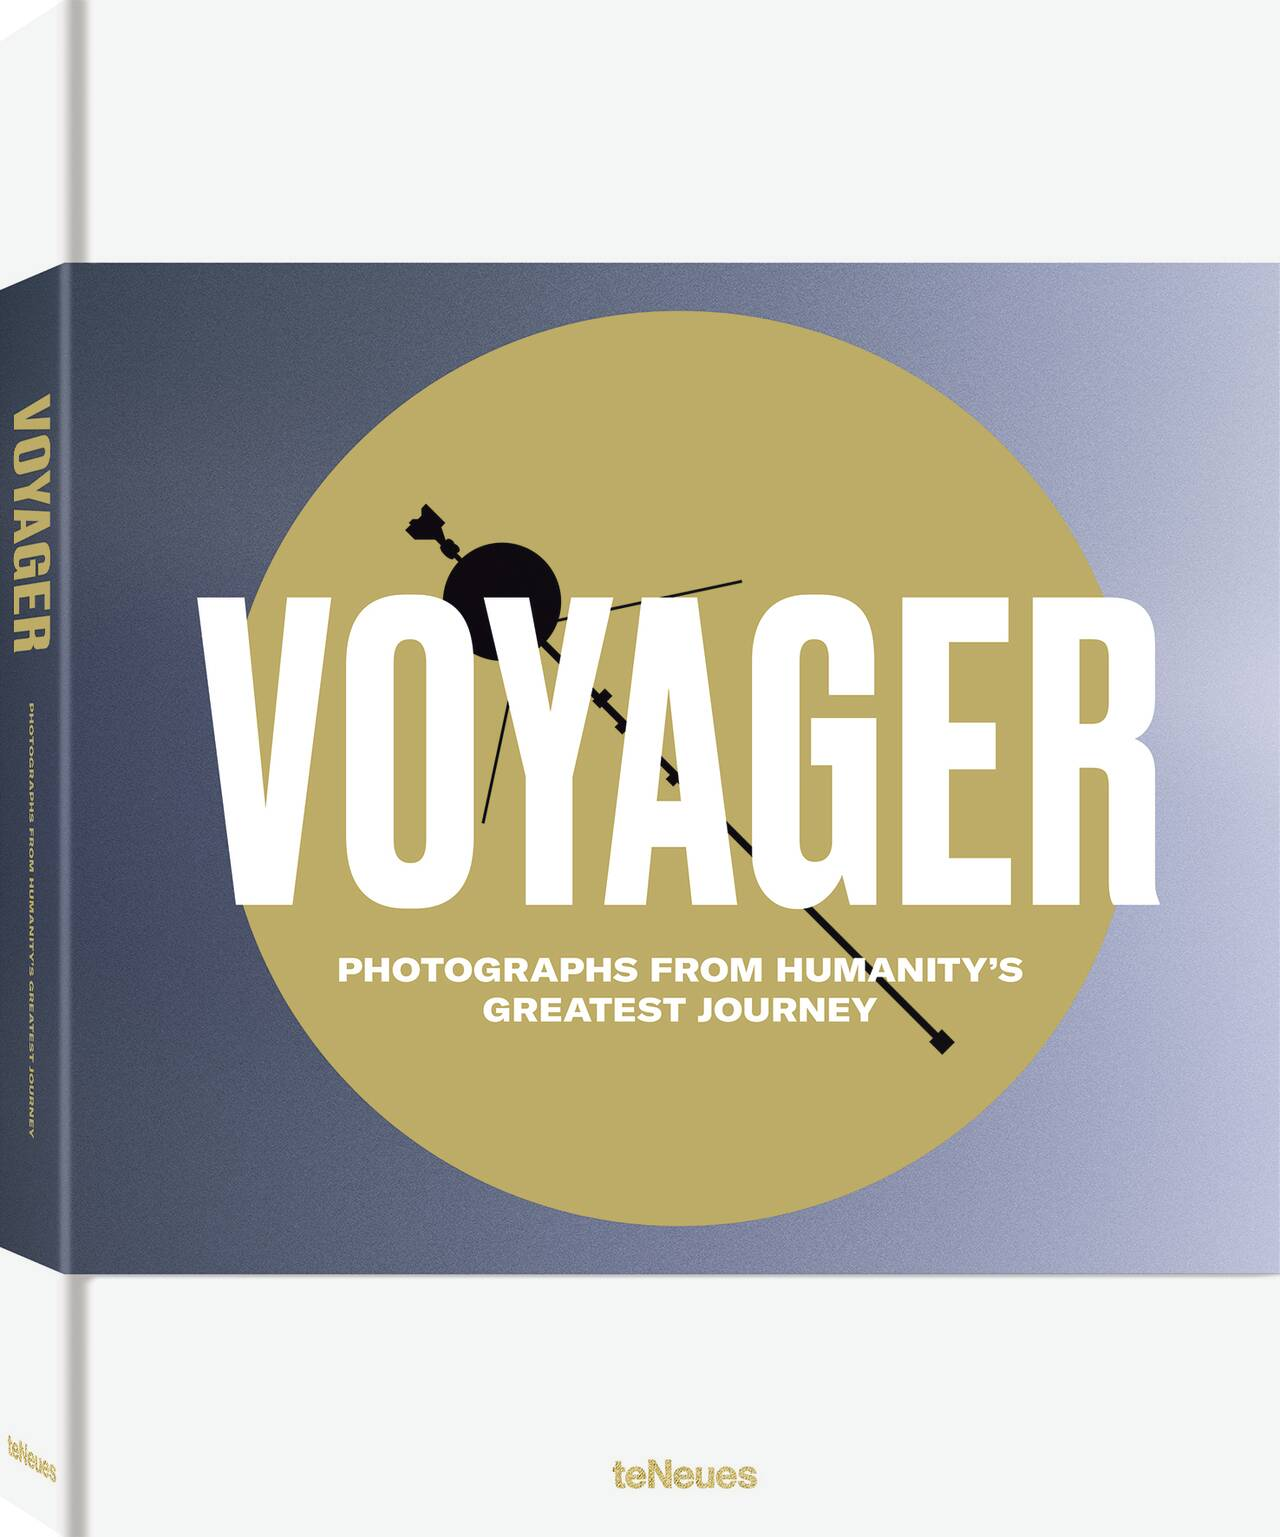 © VOYAGER - Photographs from Humanity's Greatest Journey by Jens Bezemer, Joel Meter, Simon Phillipson, Delano Steenmeijer, Ted Stryk, published by teNeues, www.teneues.com